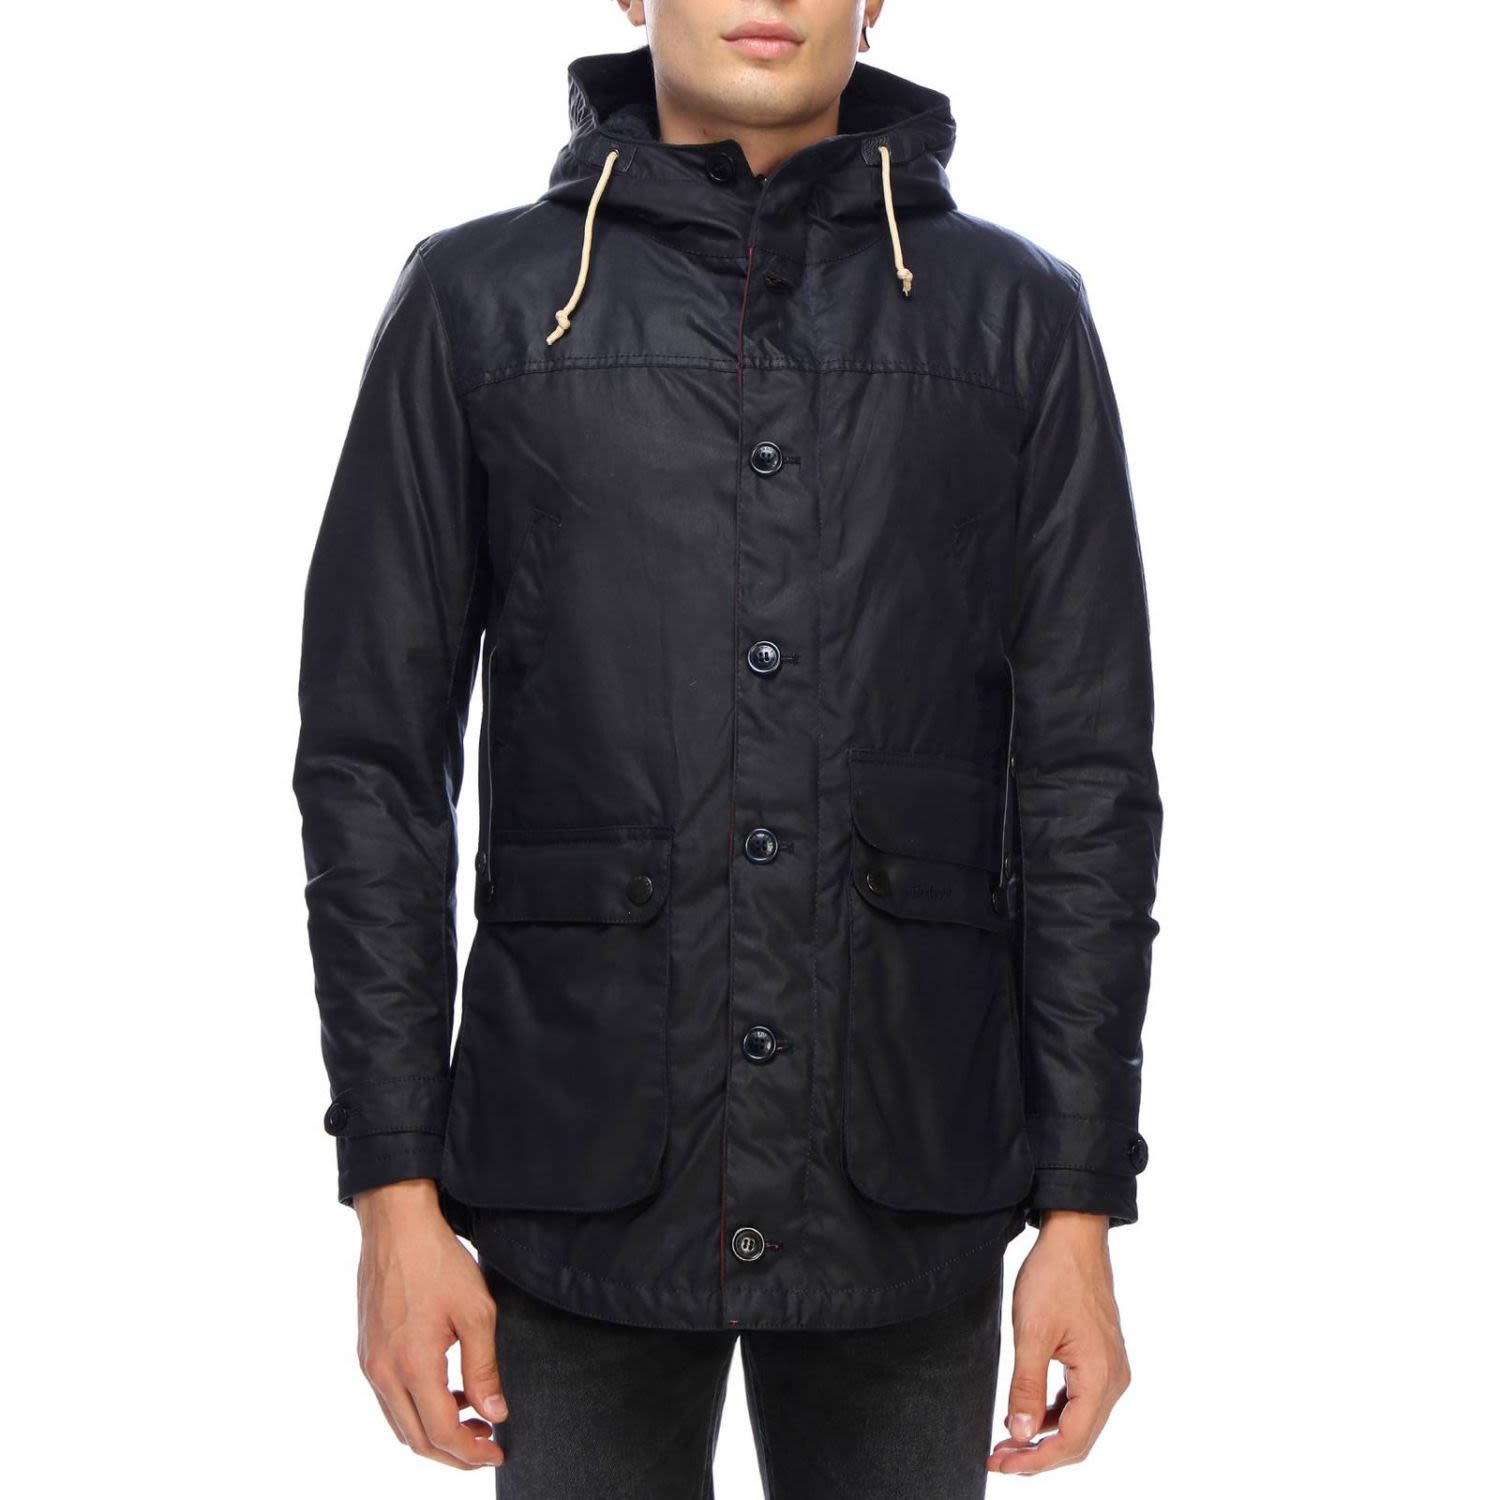 Barbour Jacket Jacket Men Barbour